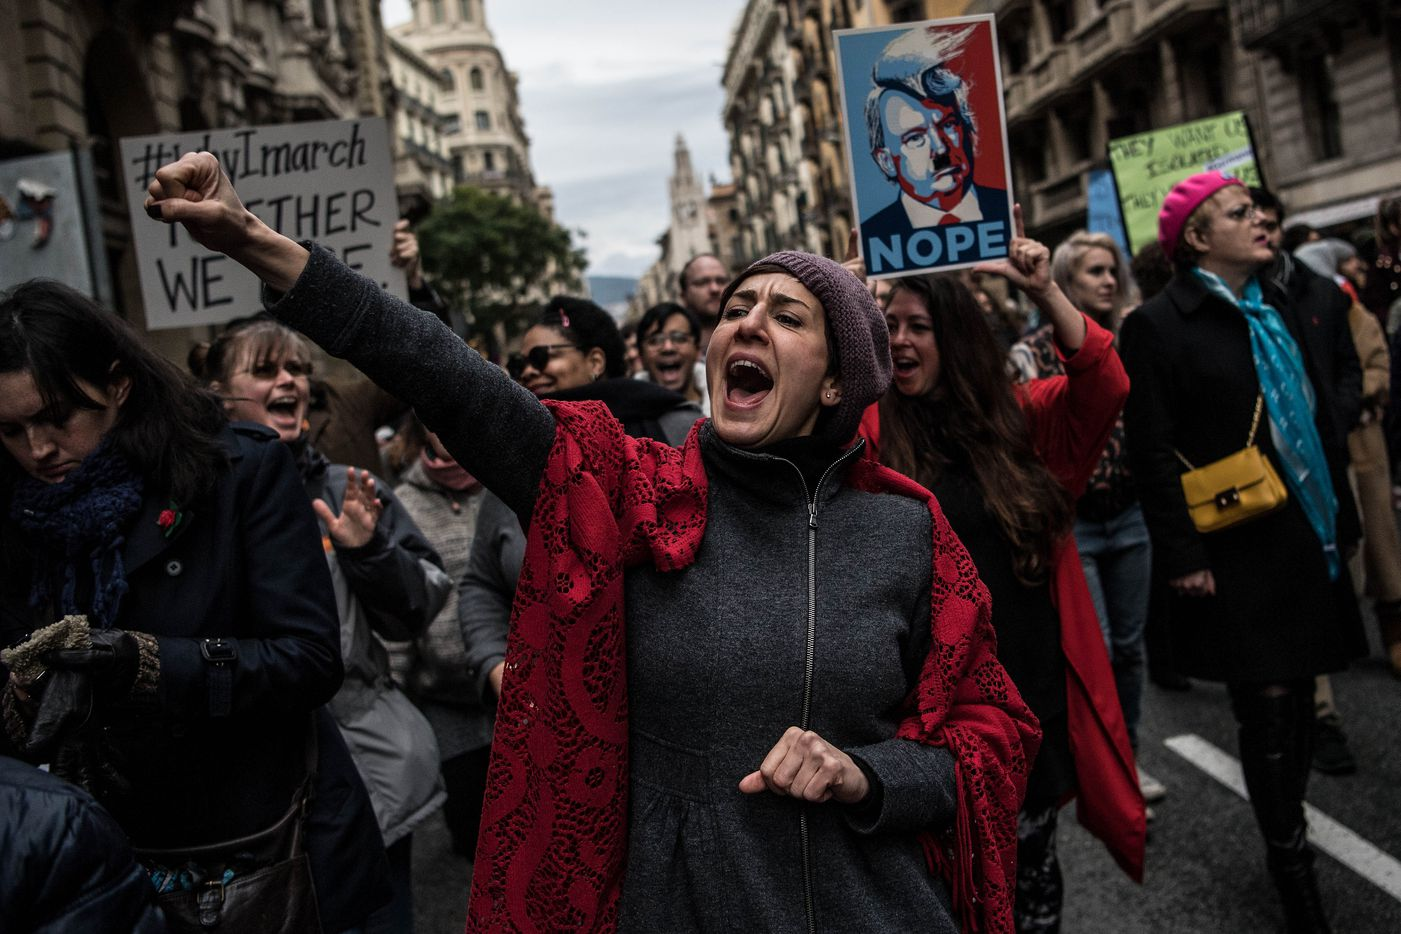 Demonstrators make their way during the Women's March on January 21, 2017 in Barcelona, Spain. Global marches are now being held, on the same day, across seven continents.